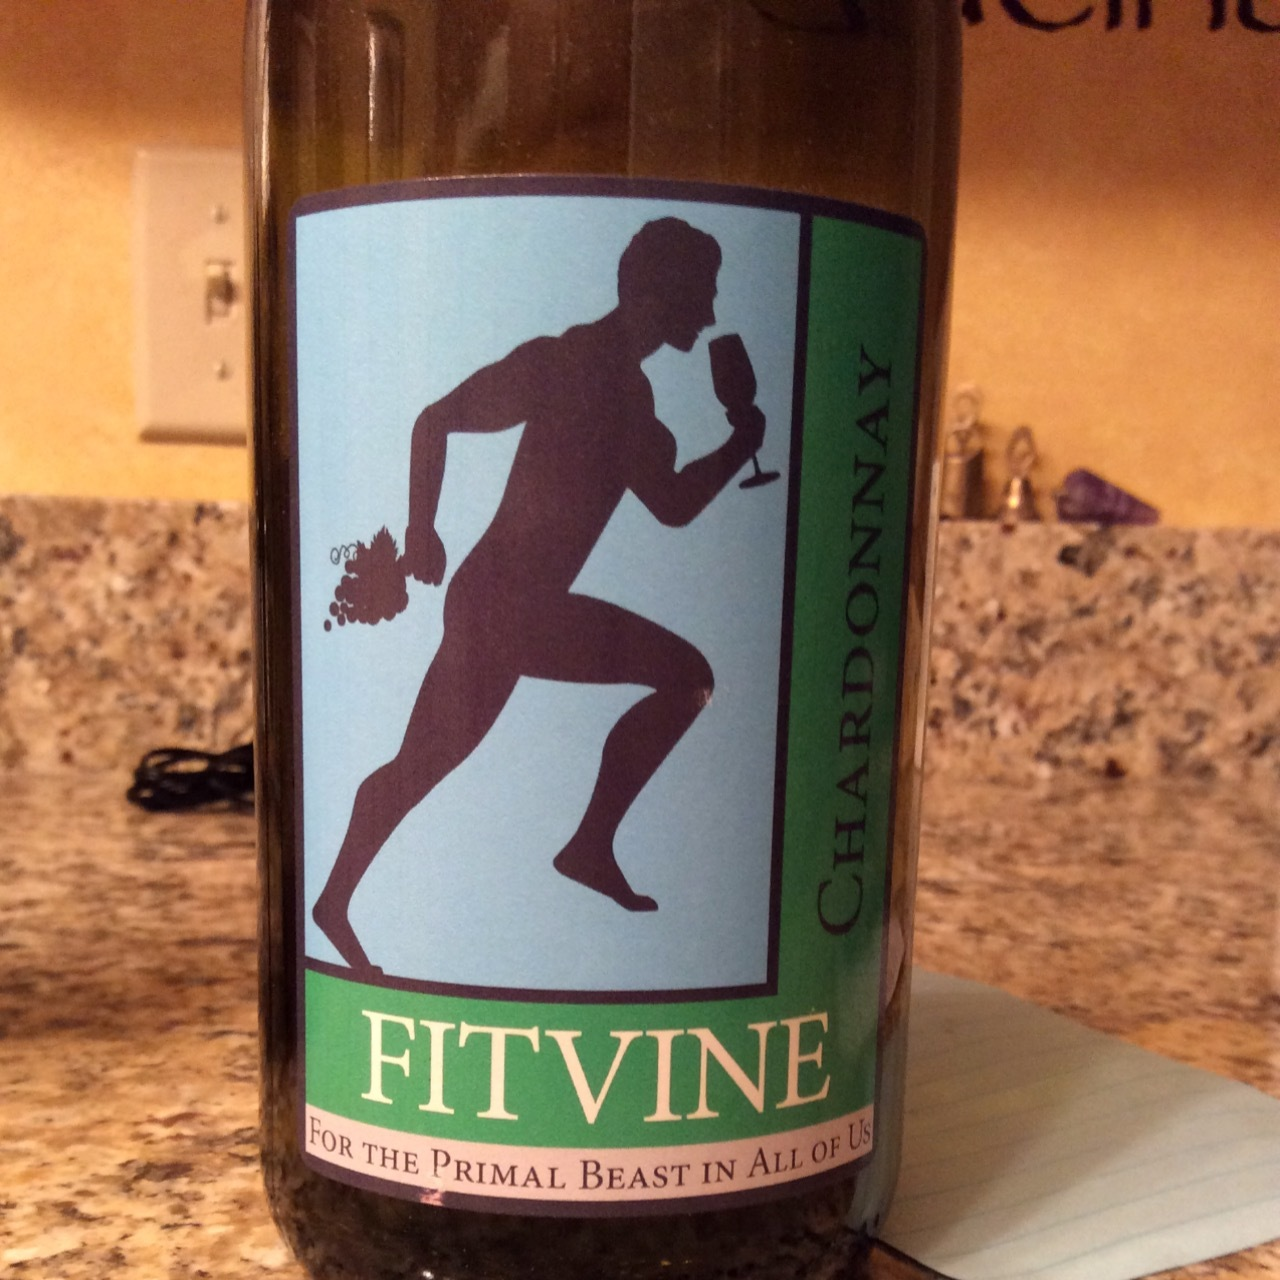 Fitvine Rose Whole Foods Market 365 Concord